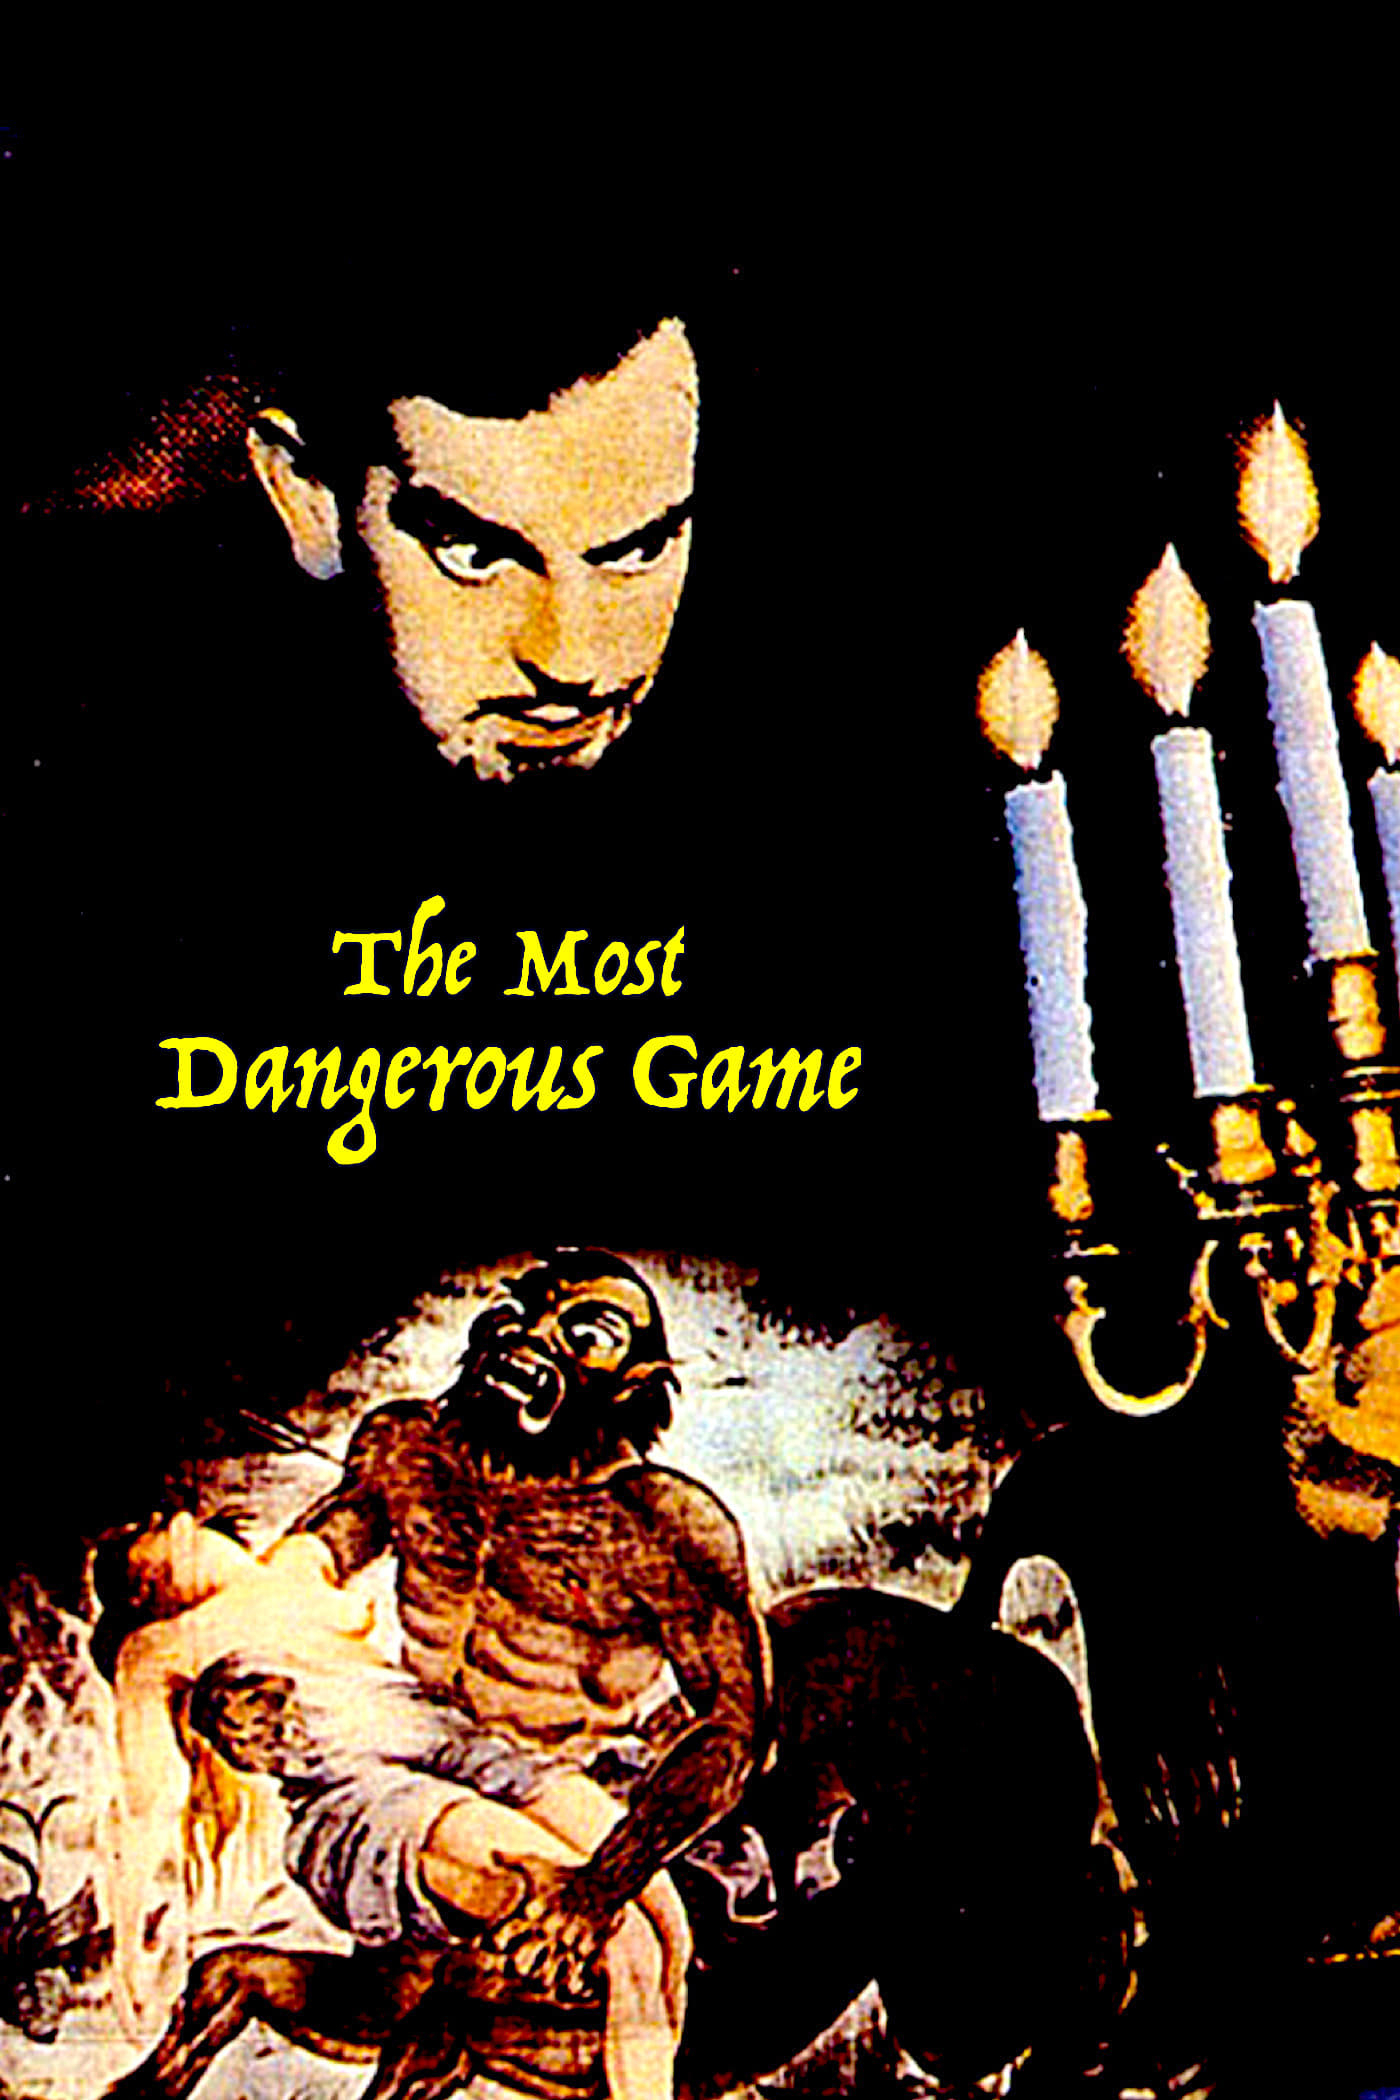 the most dangerous game synecdoche The most dangerous game is the original tale of the hunter becoming the hunted, as skilled game-hunter rainsford finds himself fighting for his very life in a cat-and-mouse game with the.